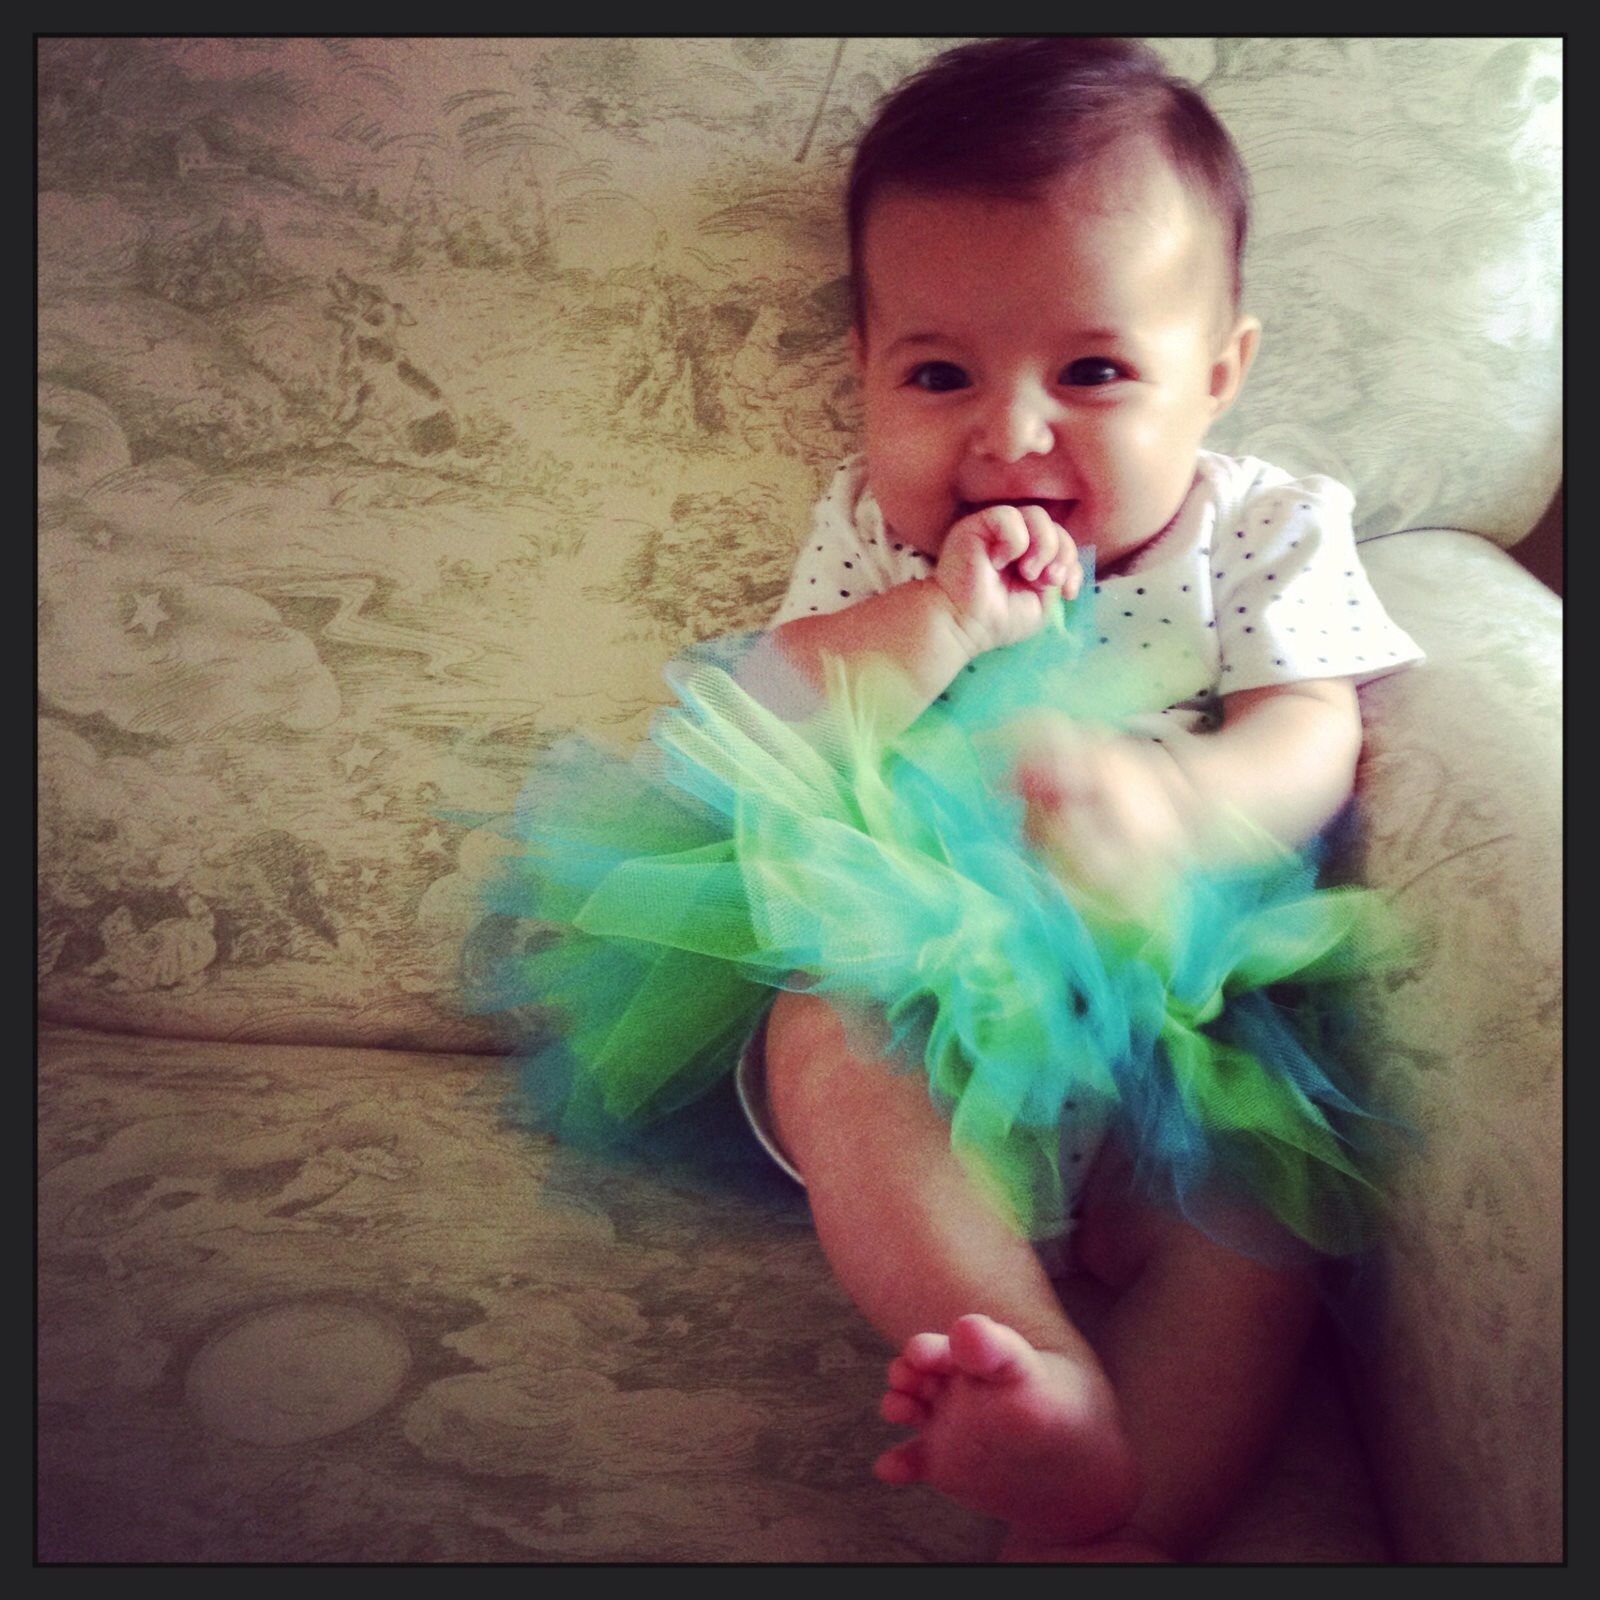 photo of infant girl with black hair in a onesie and green and blue tutu with her fist in her mouth